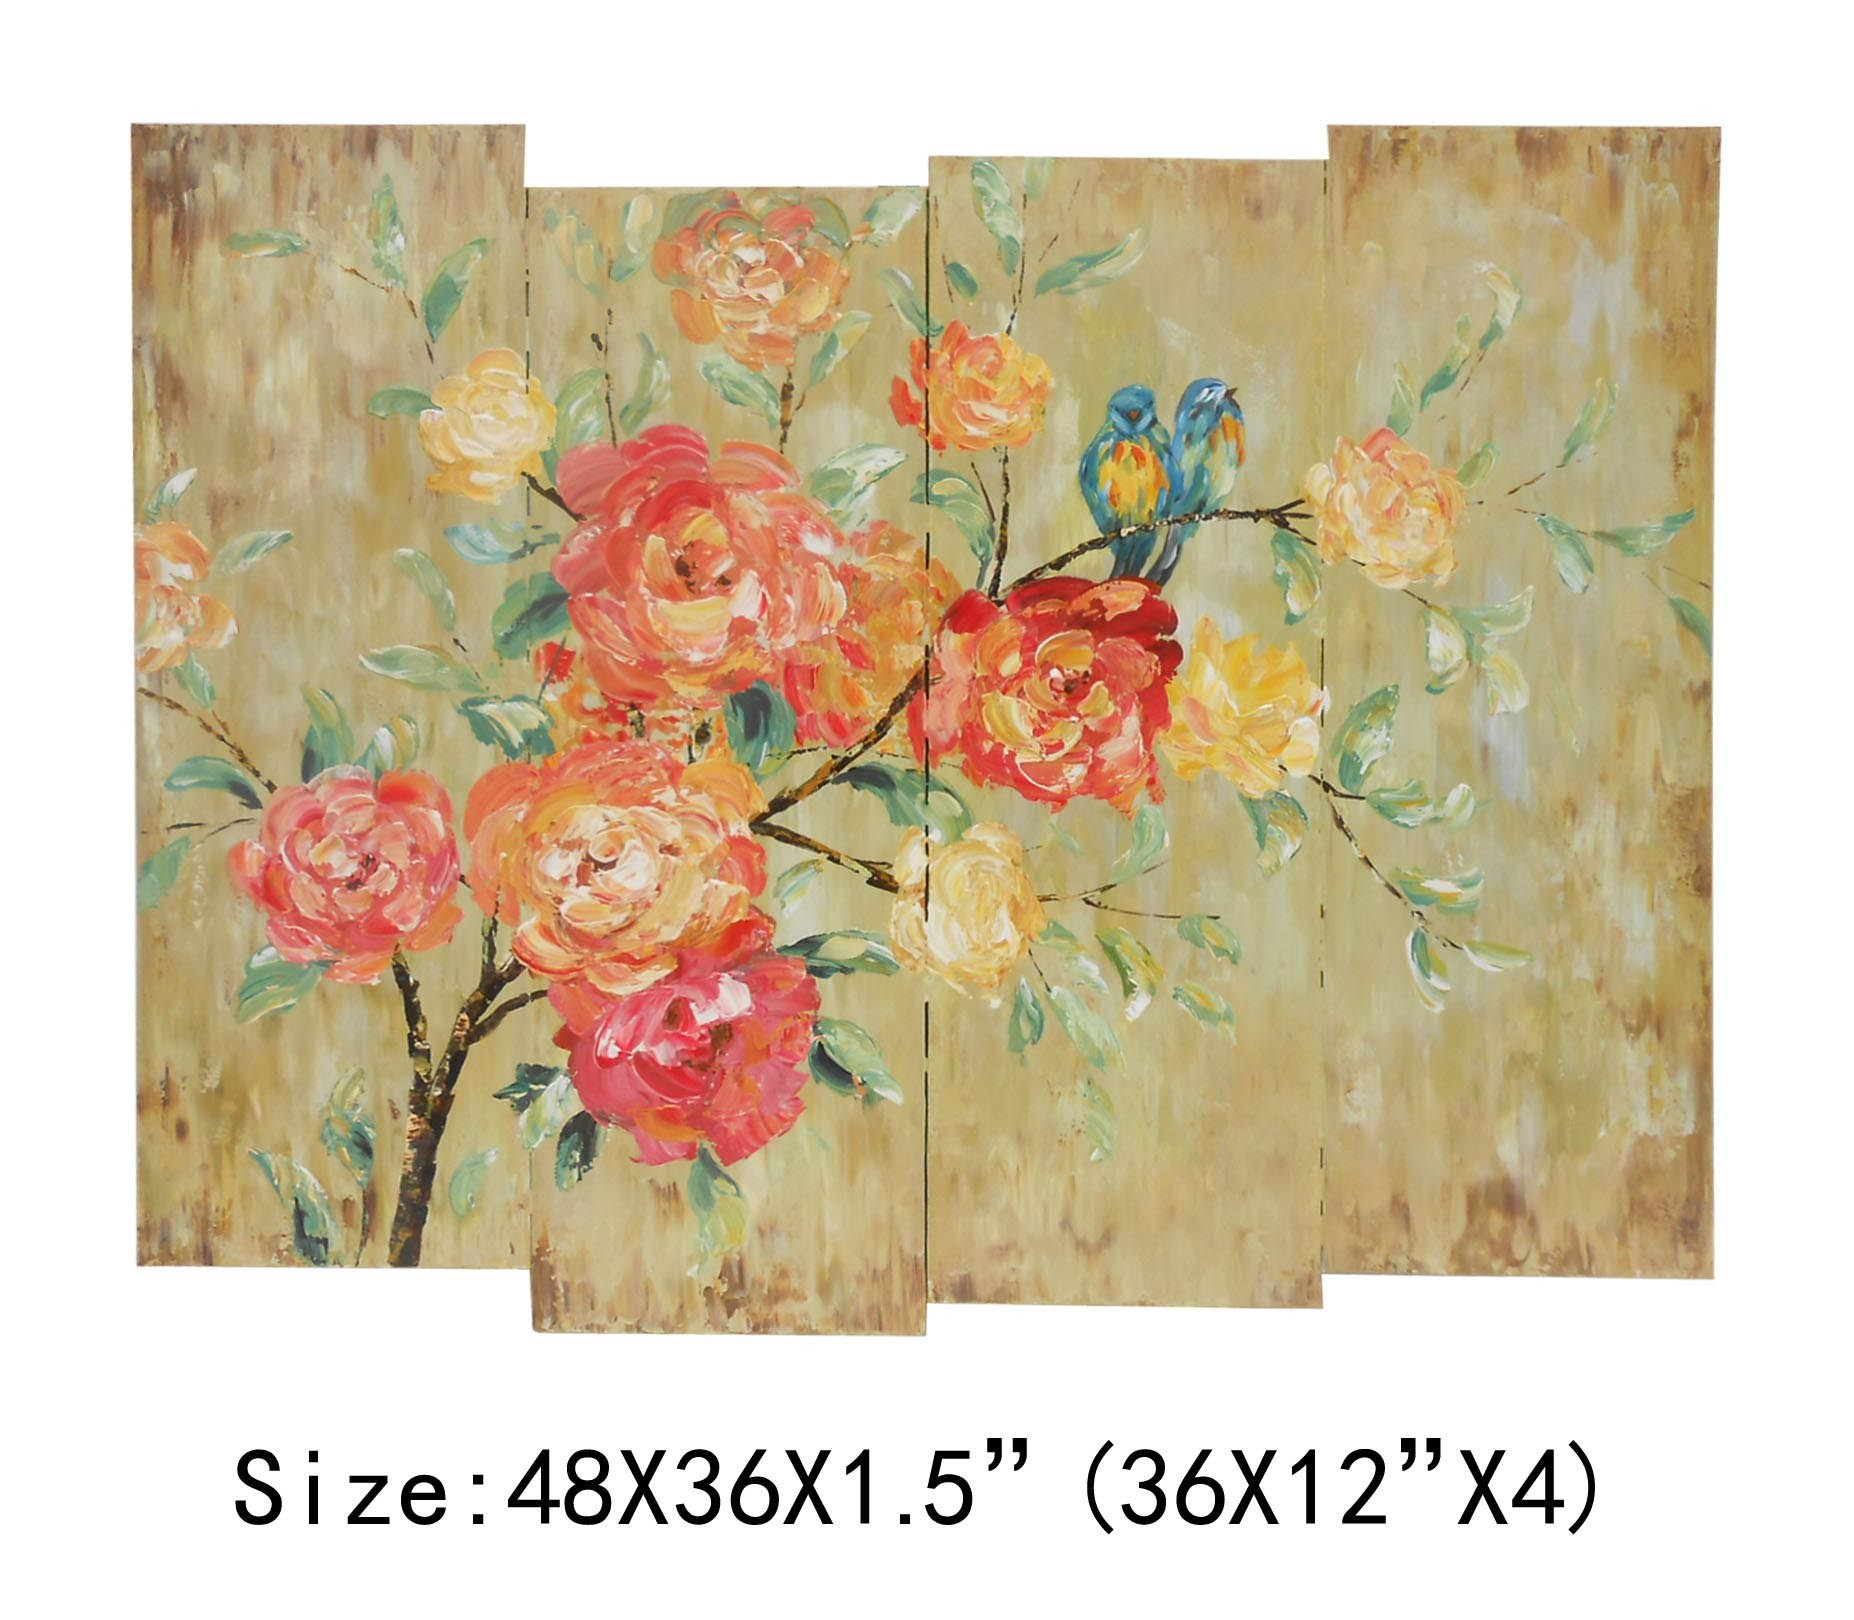 Hand-Painted 4PCS Wall Art Rose Oil Painting on Canvas